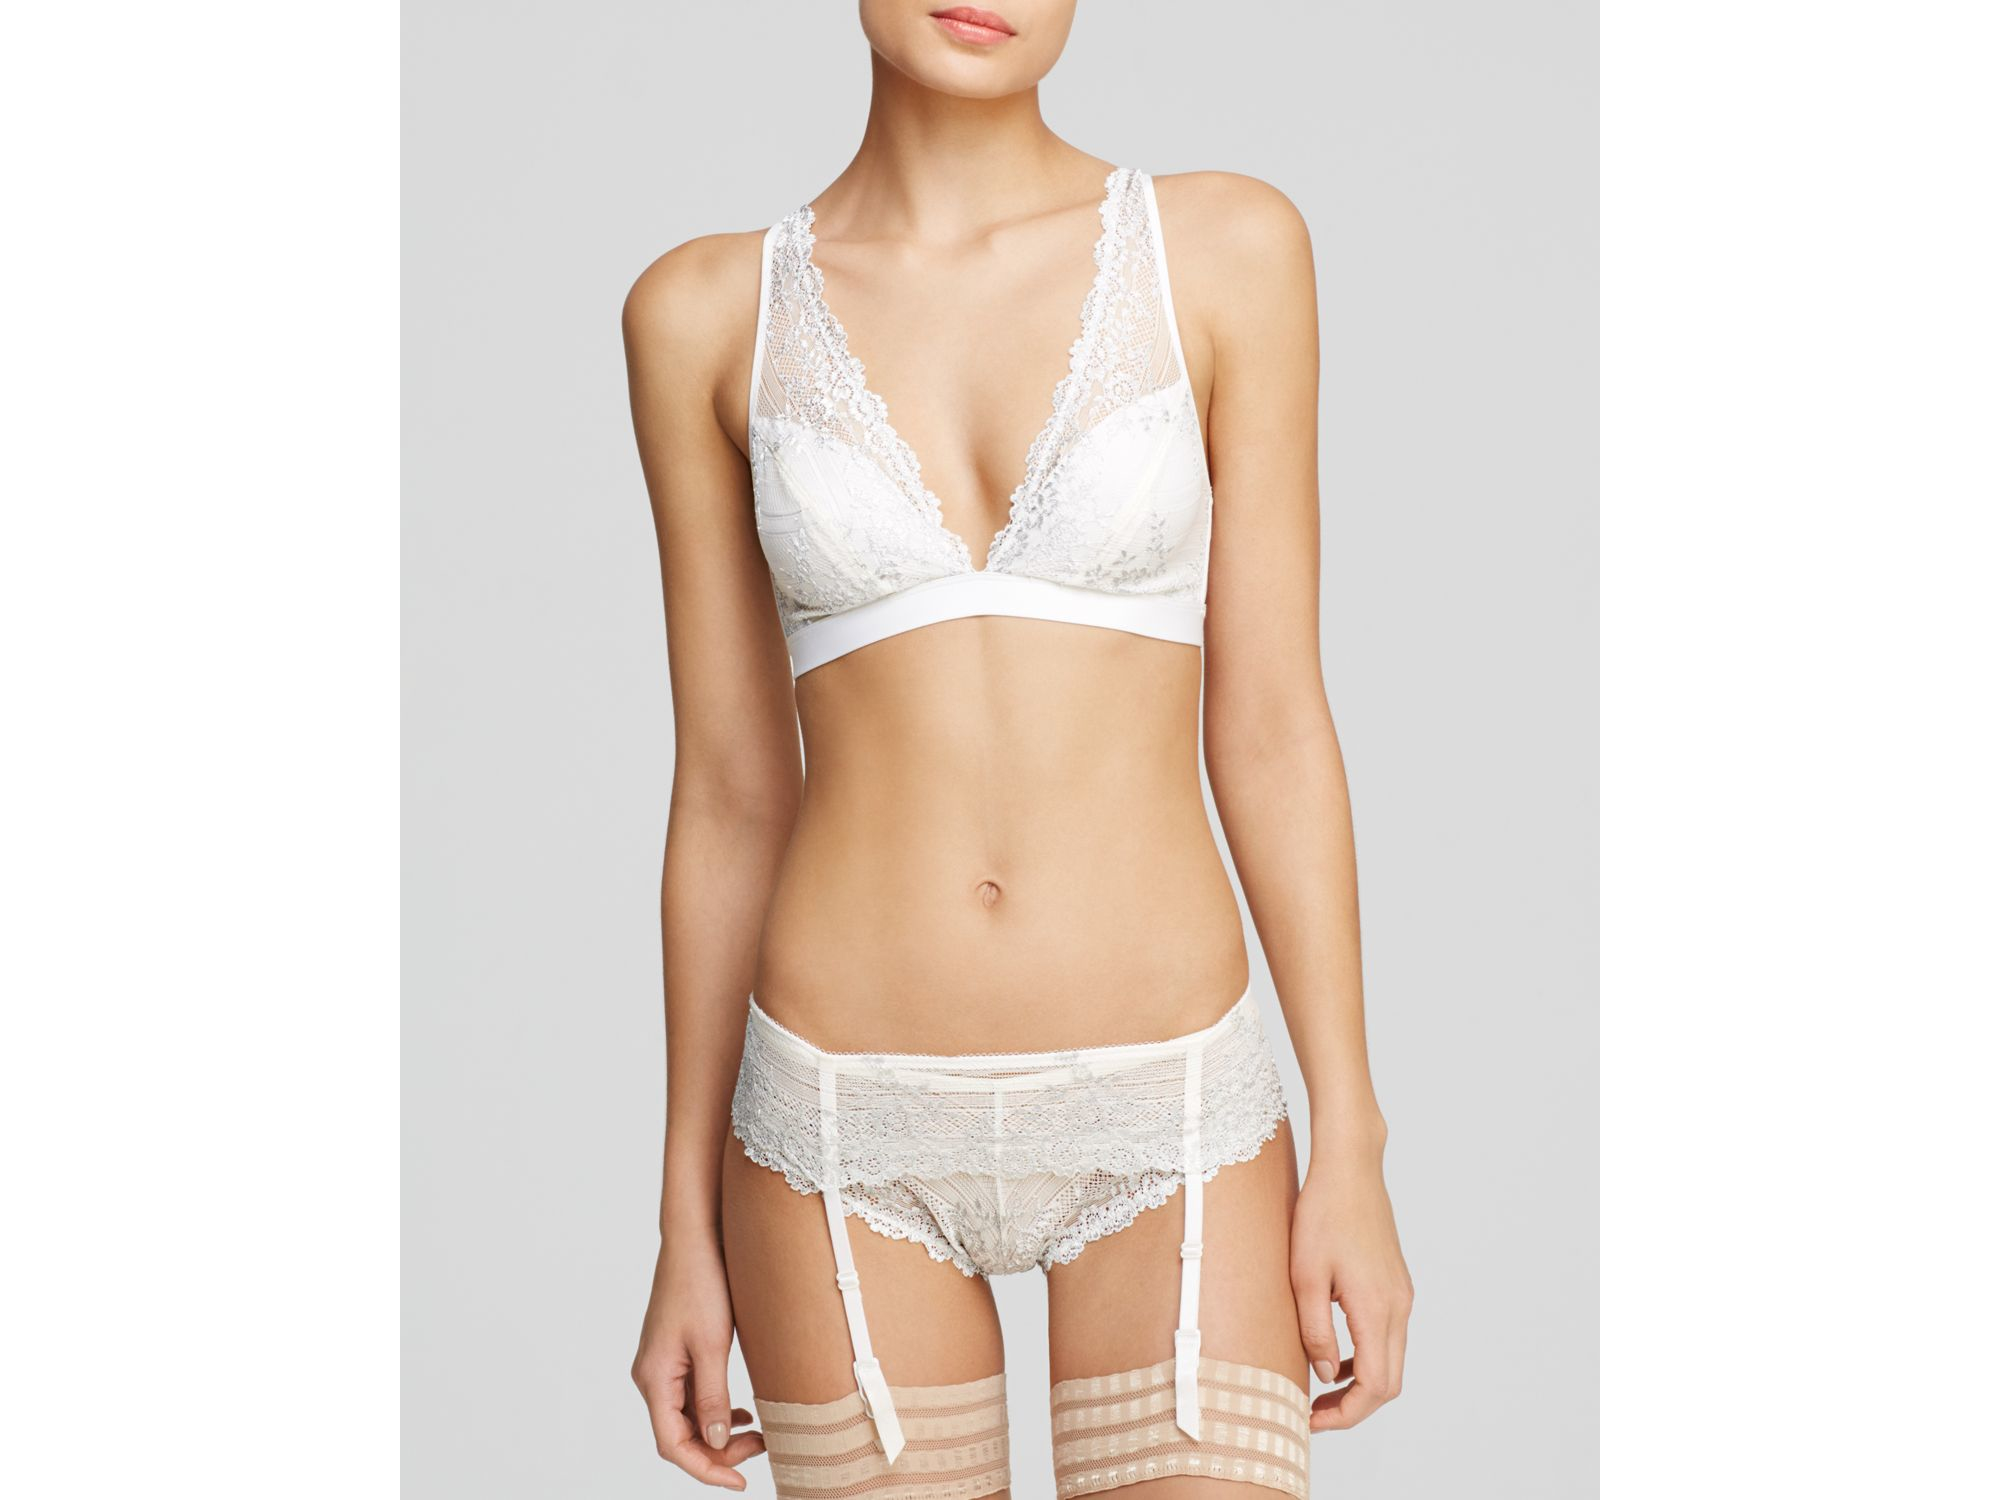 bf0d49572d9 Wacoal Bra - Embrace Lace Convertible Plunge Soft Cup Wireless ...